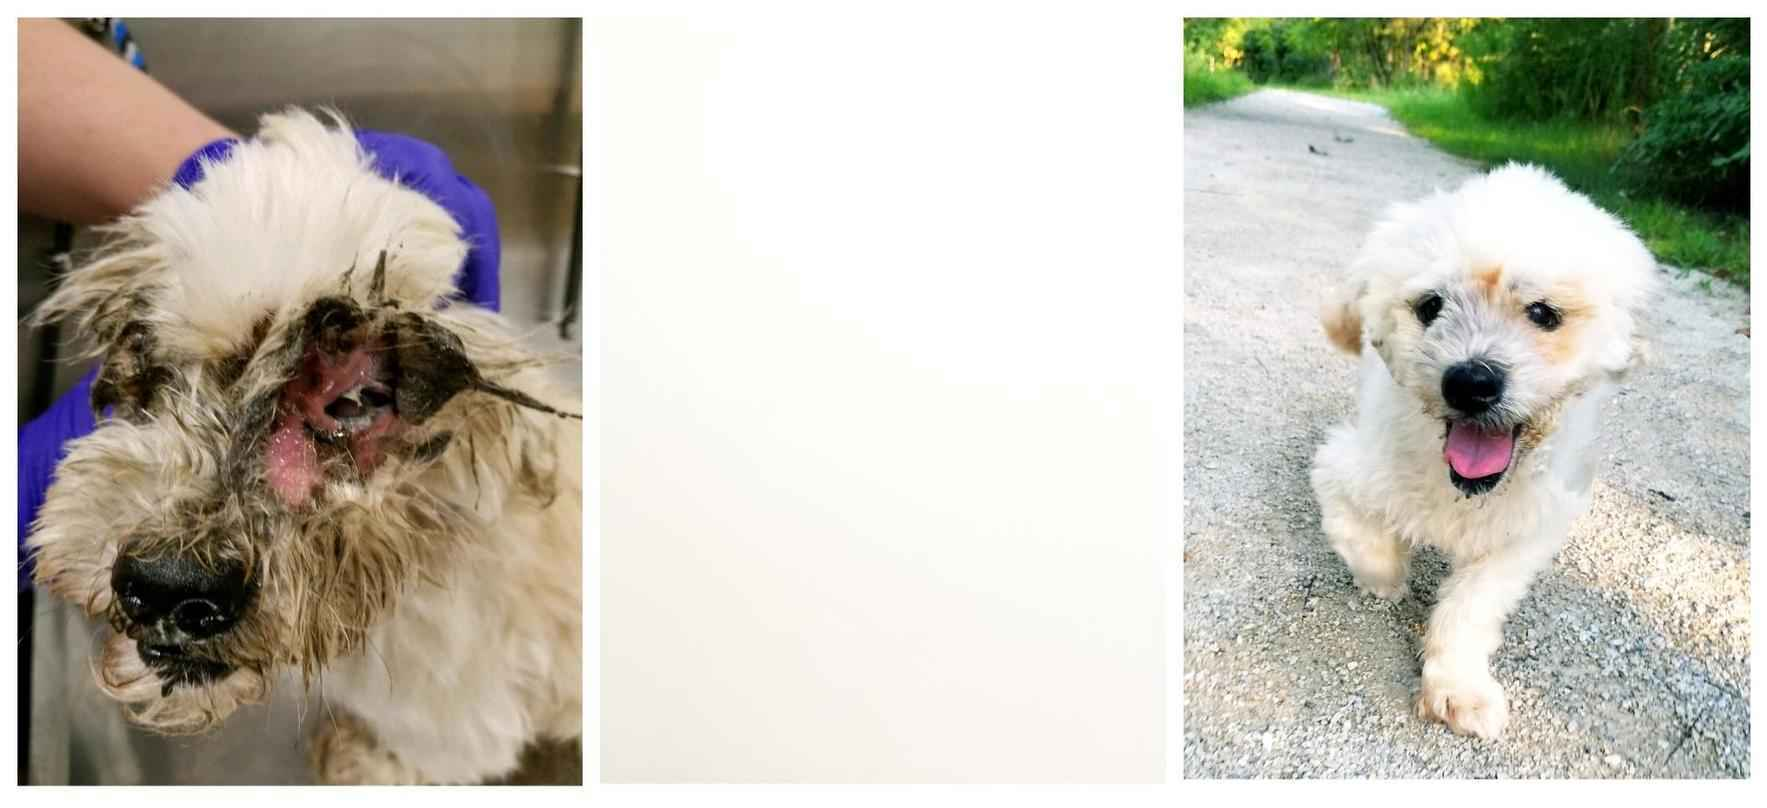 You can help sick and injured homeless cats and dogs image